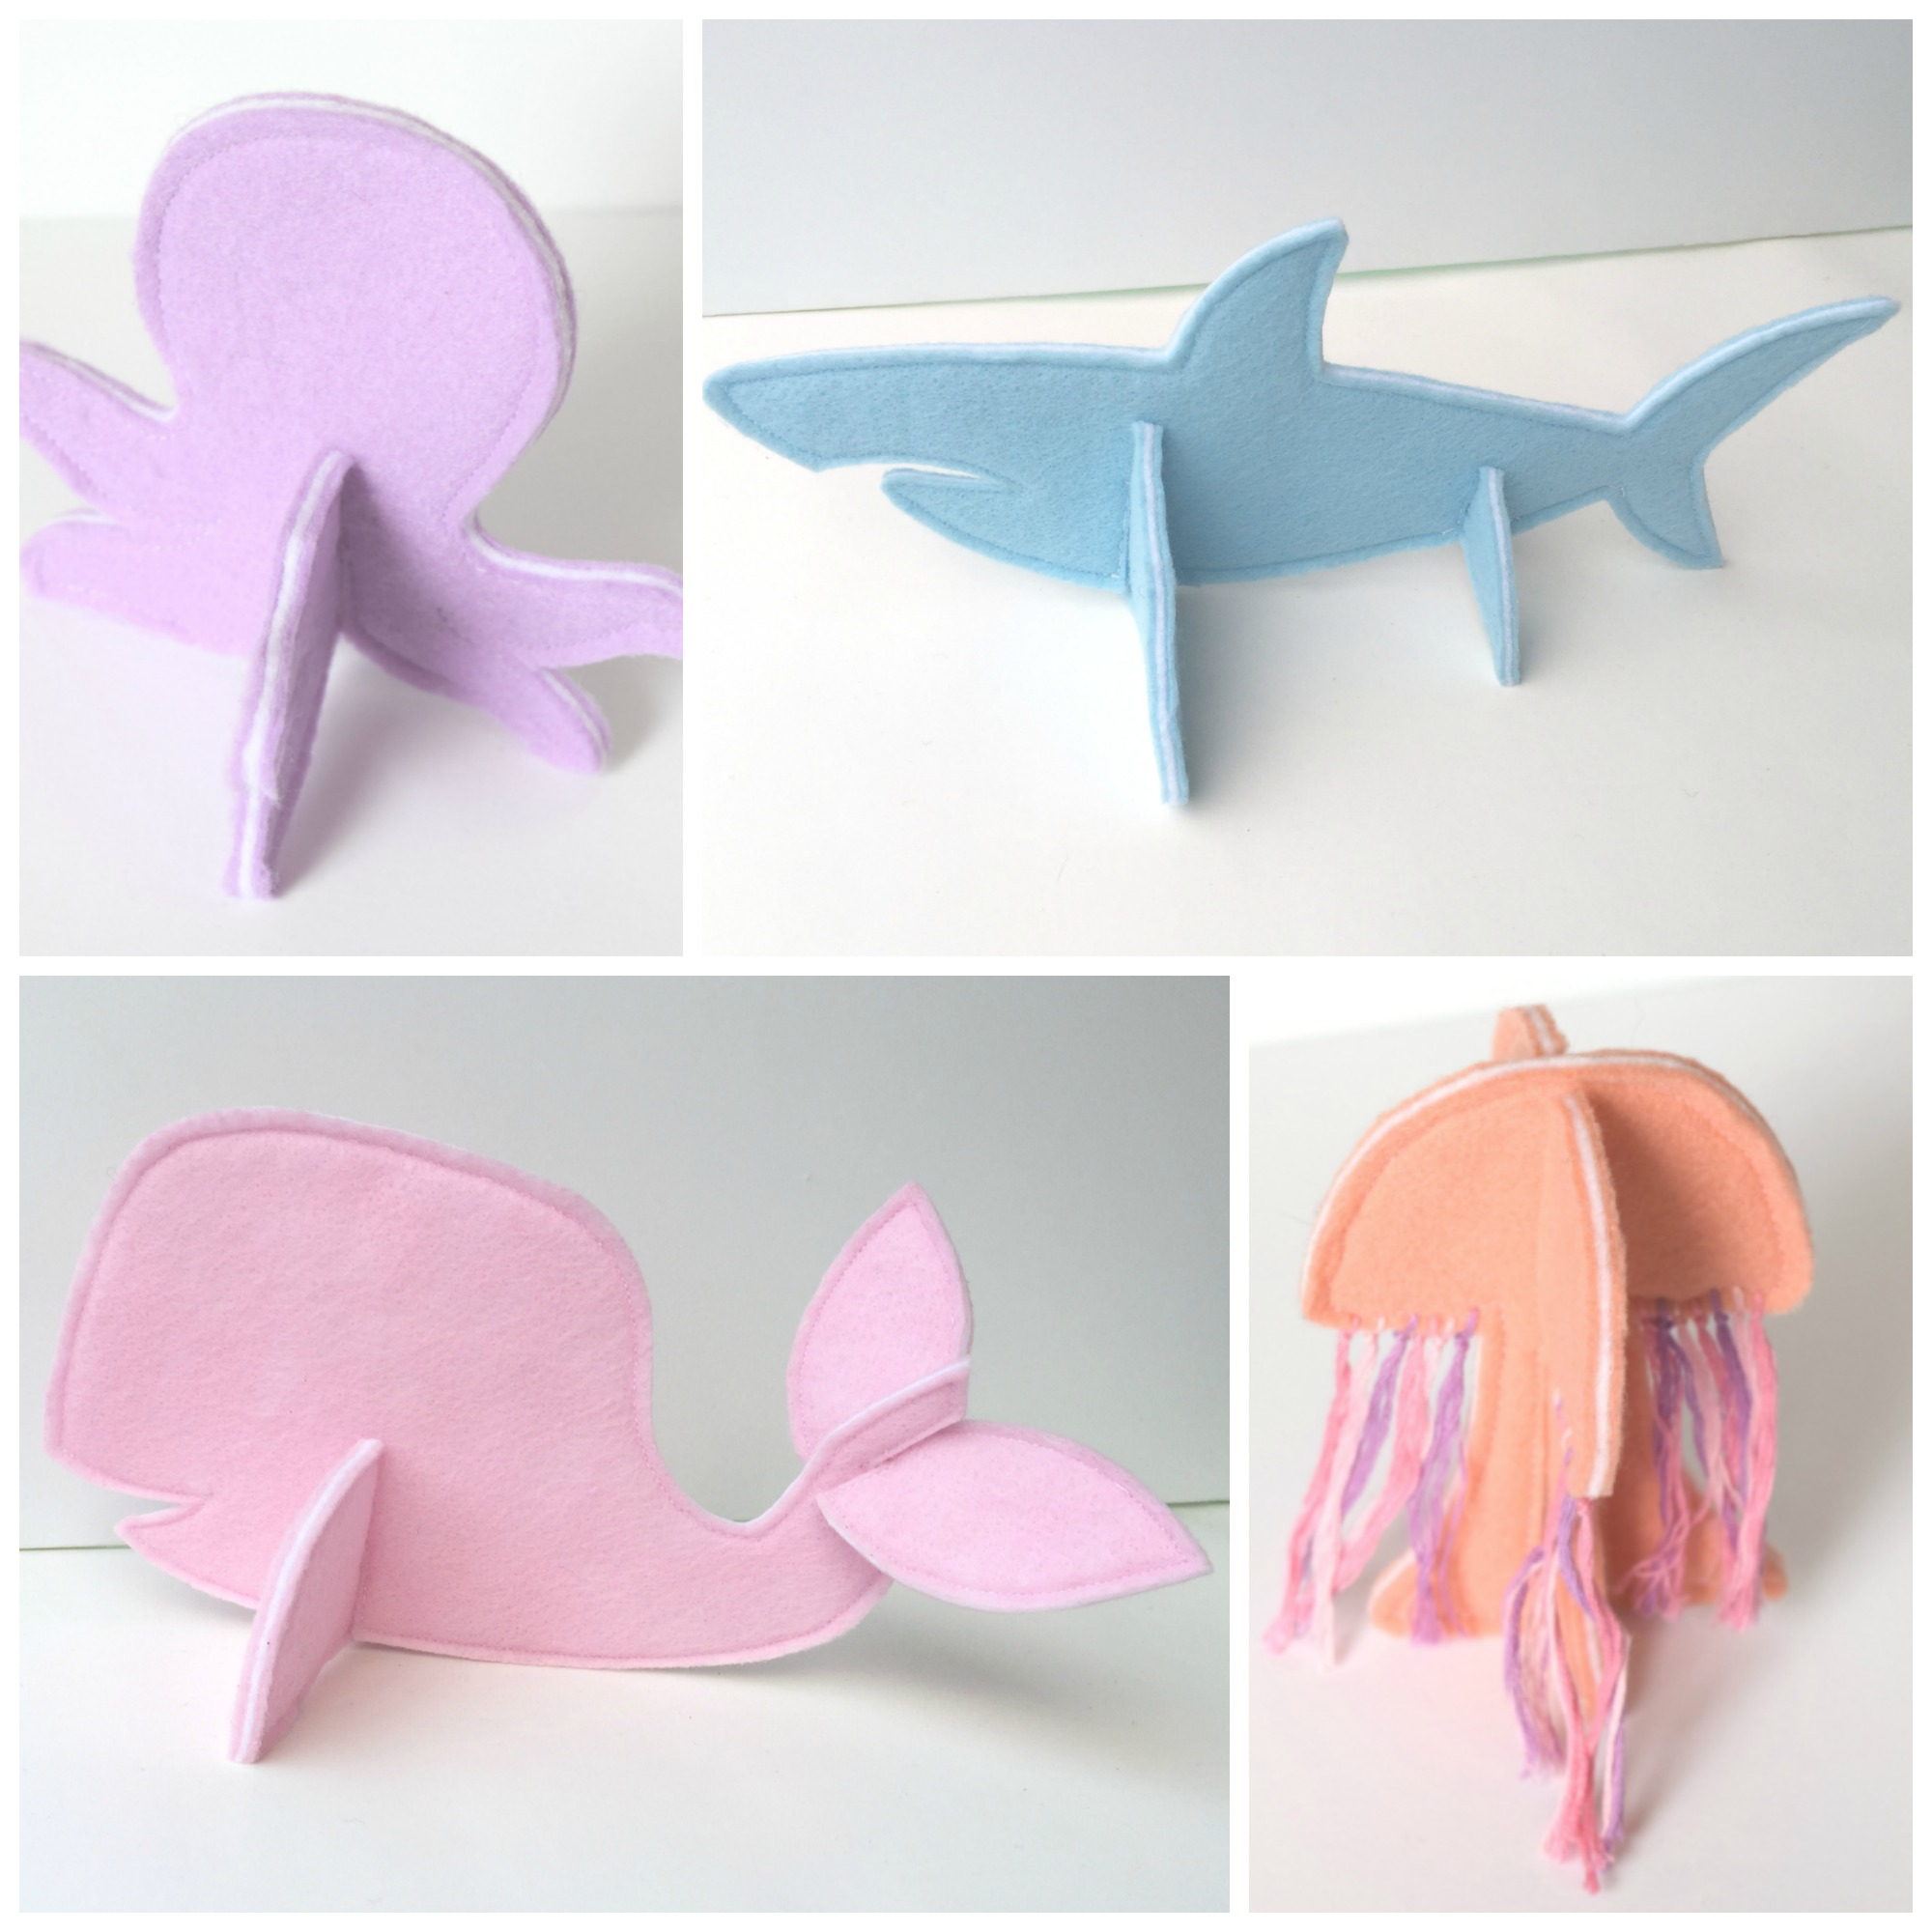 felt 3d puzzle animals sewing pattern - ocean animals set - felt with love designs